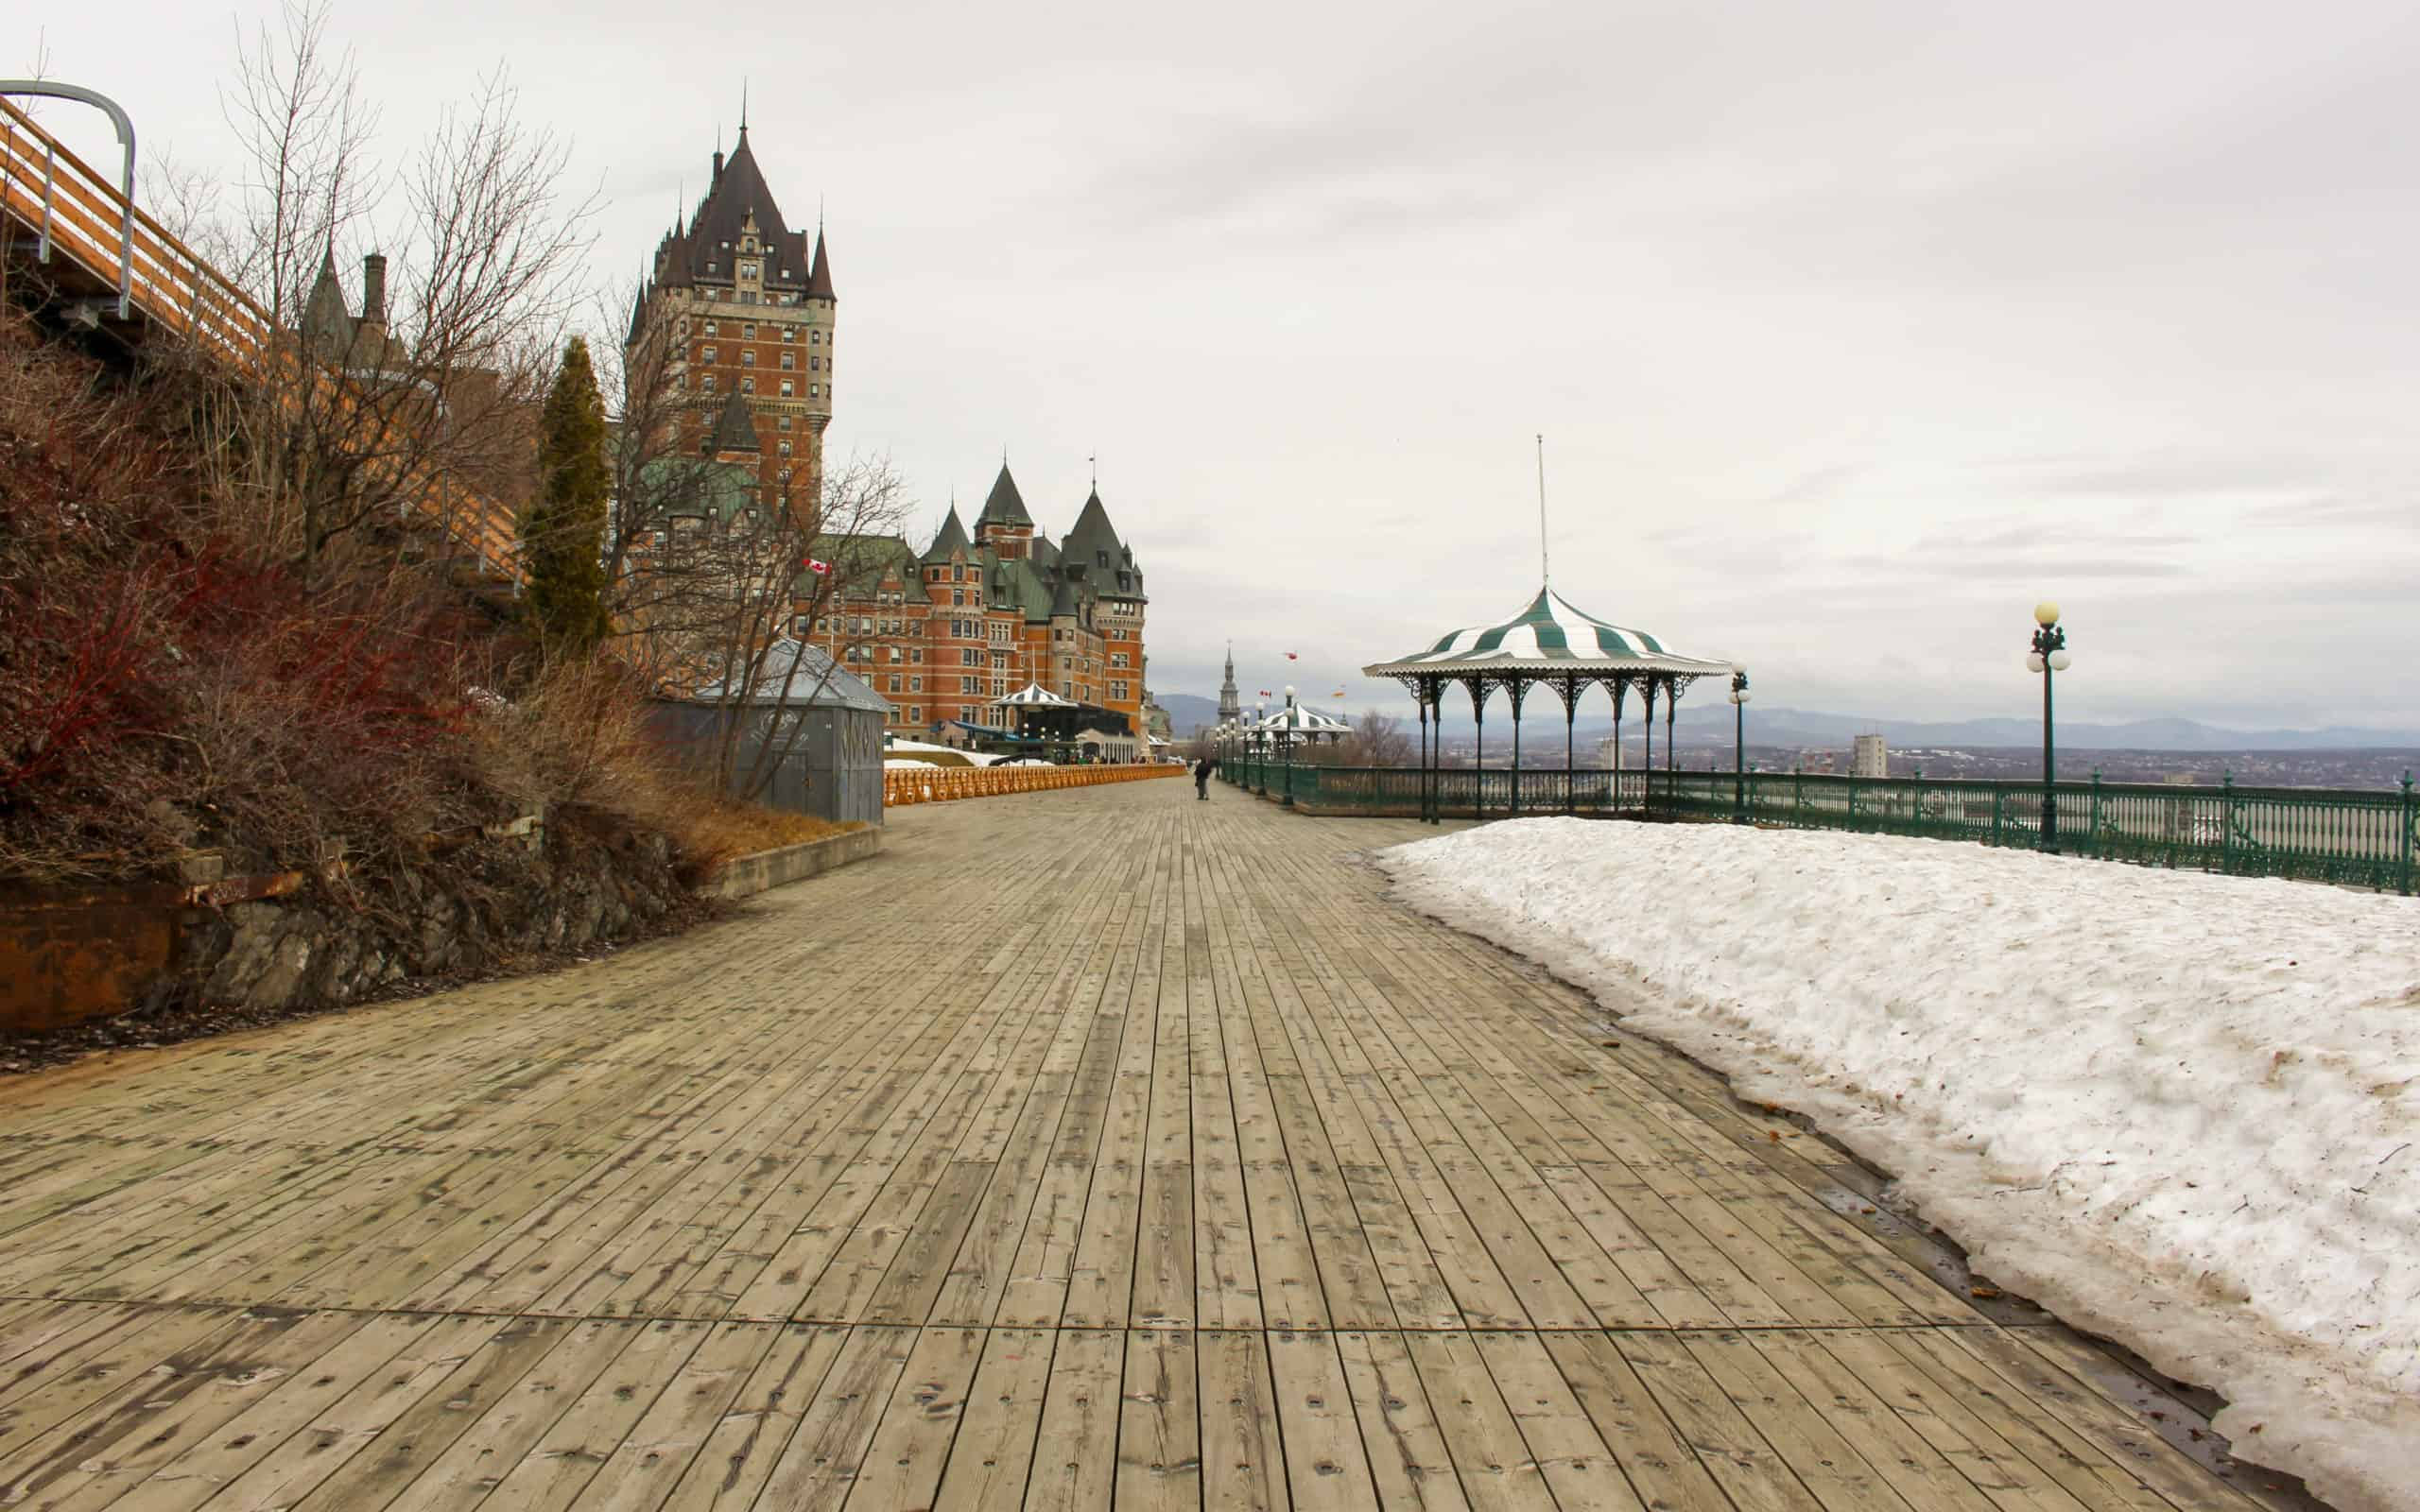 Dufferin Terrace - things to see in quebec city